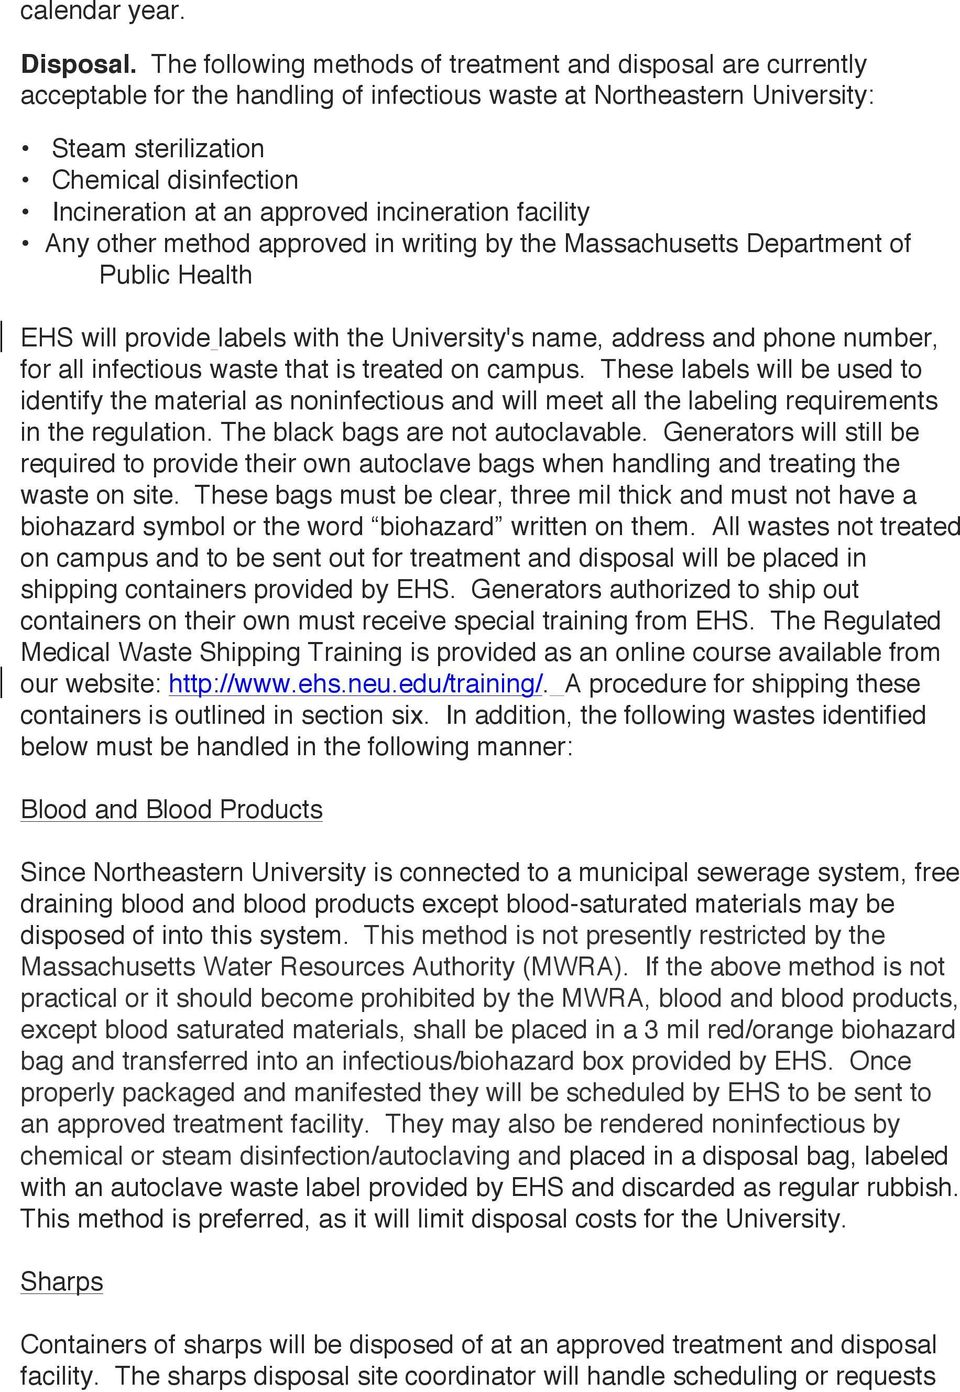 approved incineration facility Any other method approved in writing by the Massachusetts Department of Public Health EHS will provide labels with the University's name, address and phone number, for